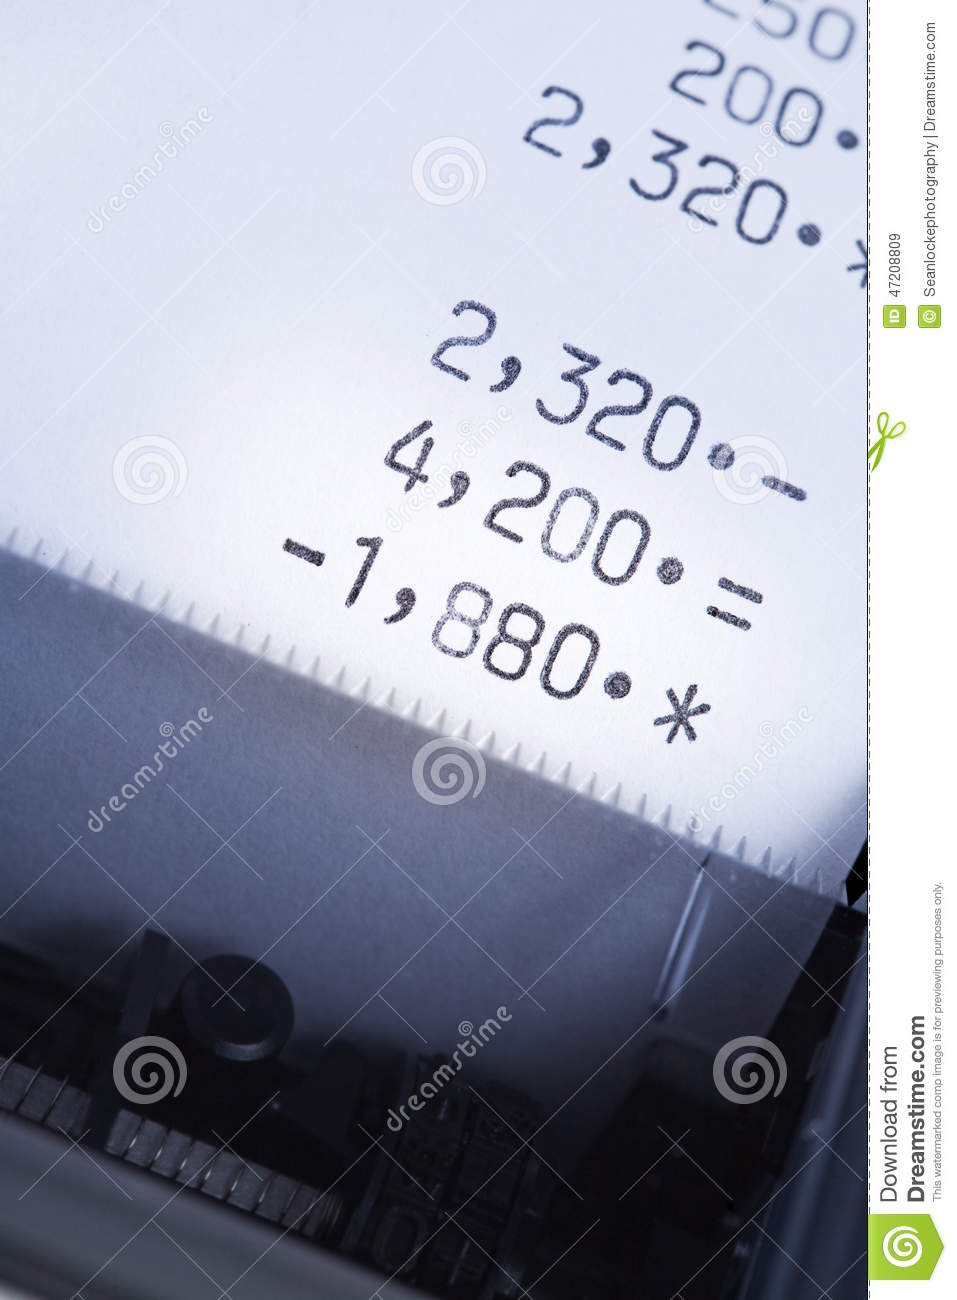 Electronic Calculator Font Stock Photos Download 24 Images Circuitry Of An Royalty Free Photography